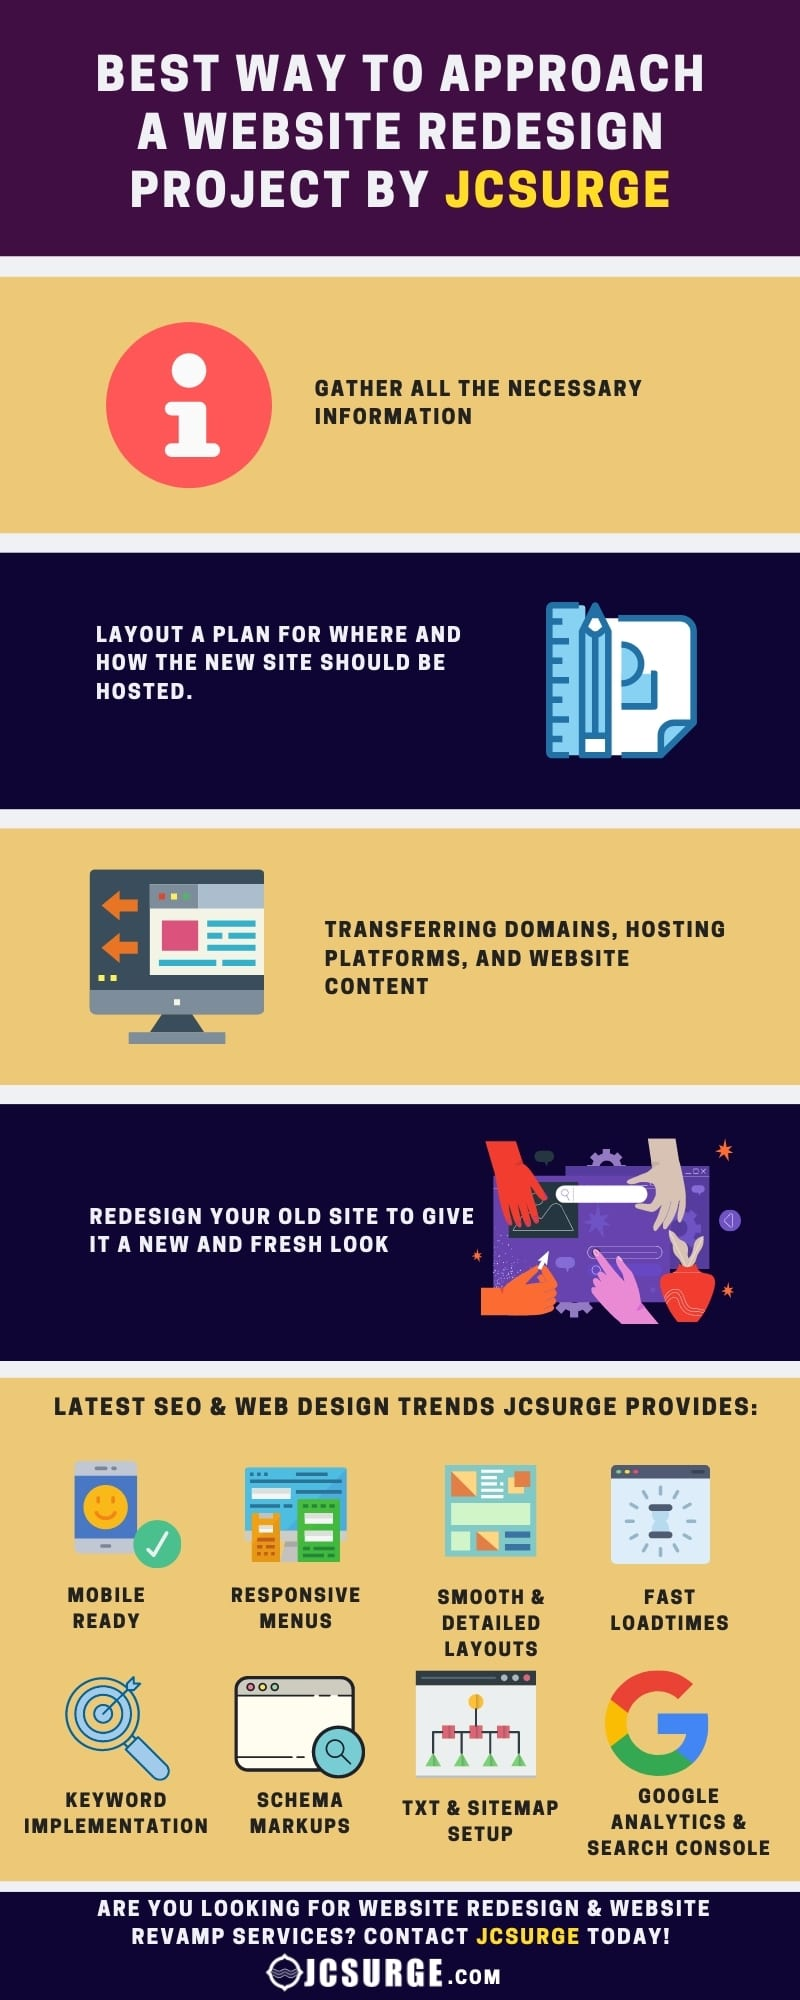 BEST WAY TO APPROACH A WEBSITE REDESIGN PROJECT by JCSURGE_